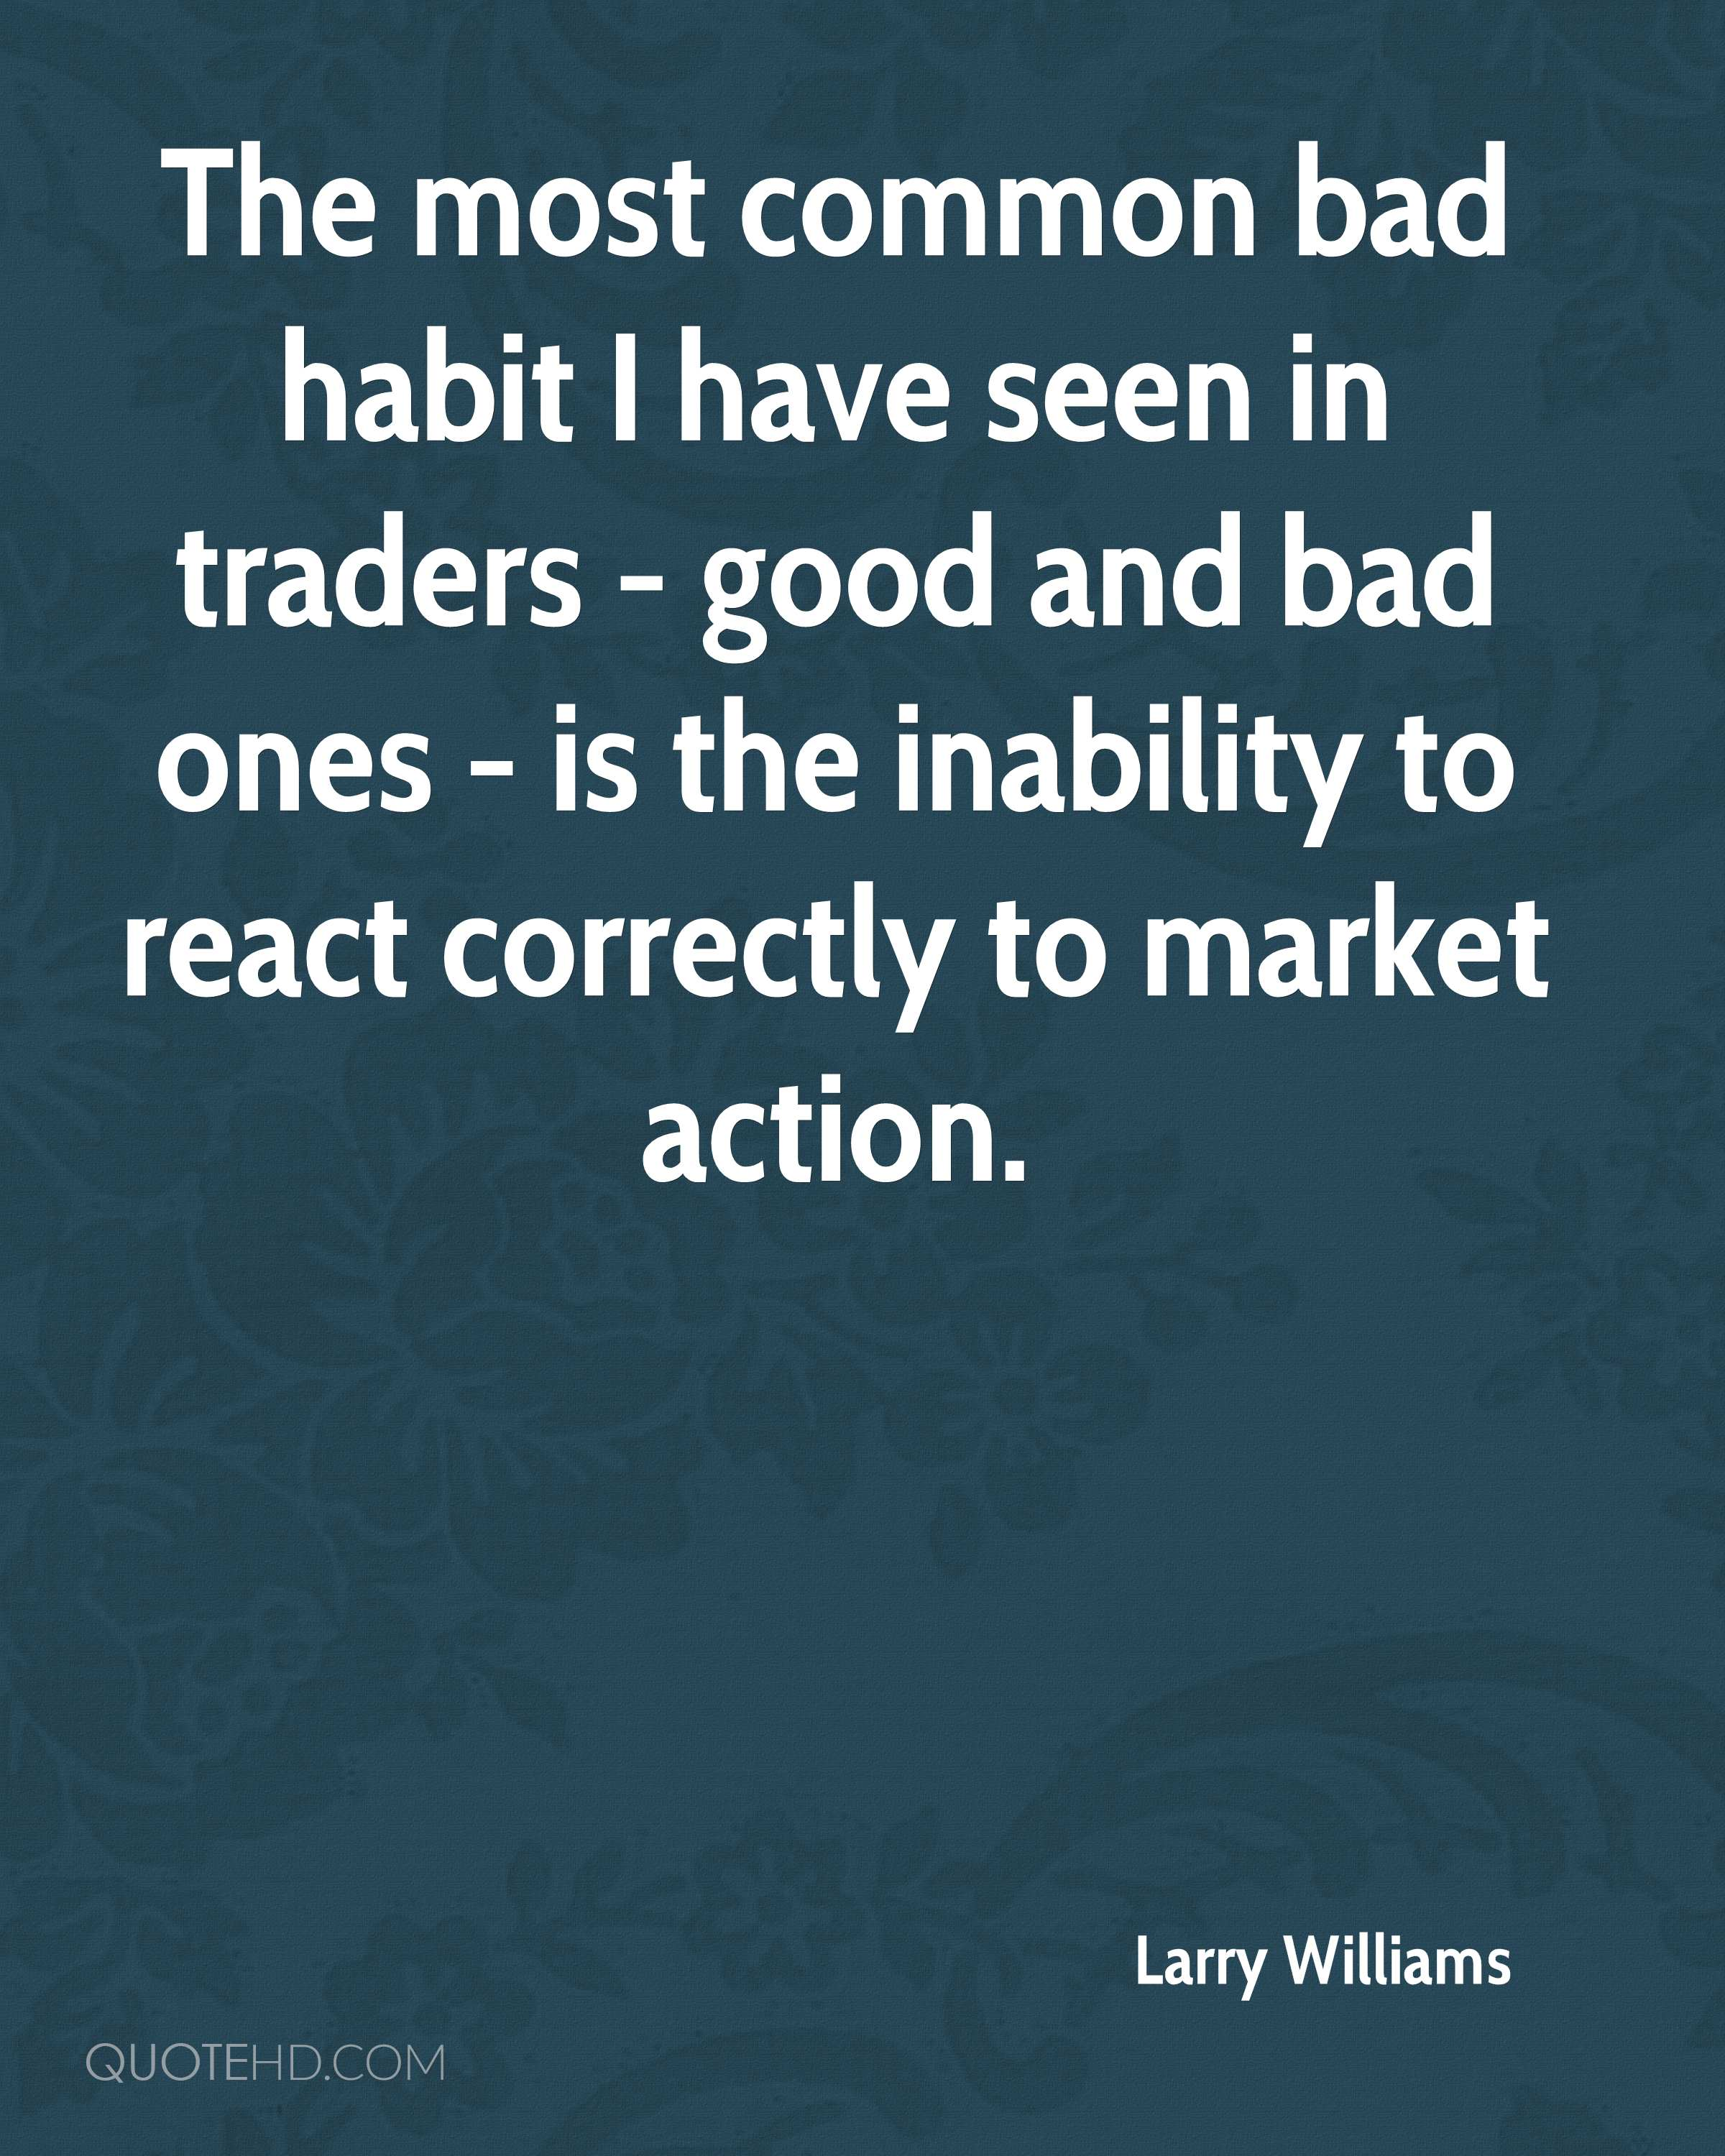 The most common bad habit I have seen in traders - good and bad ones - is the inability to react correctly to market action.